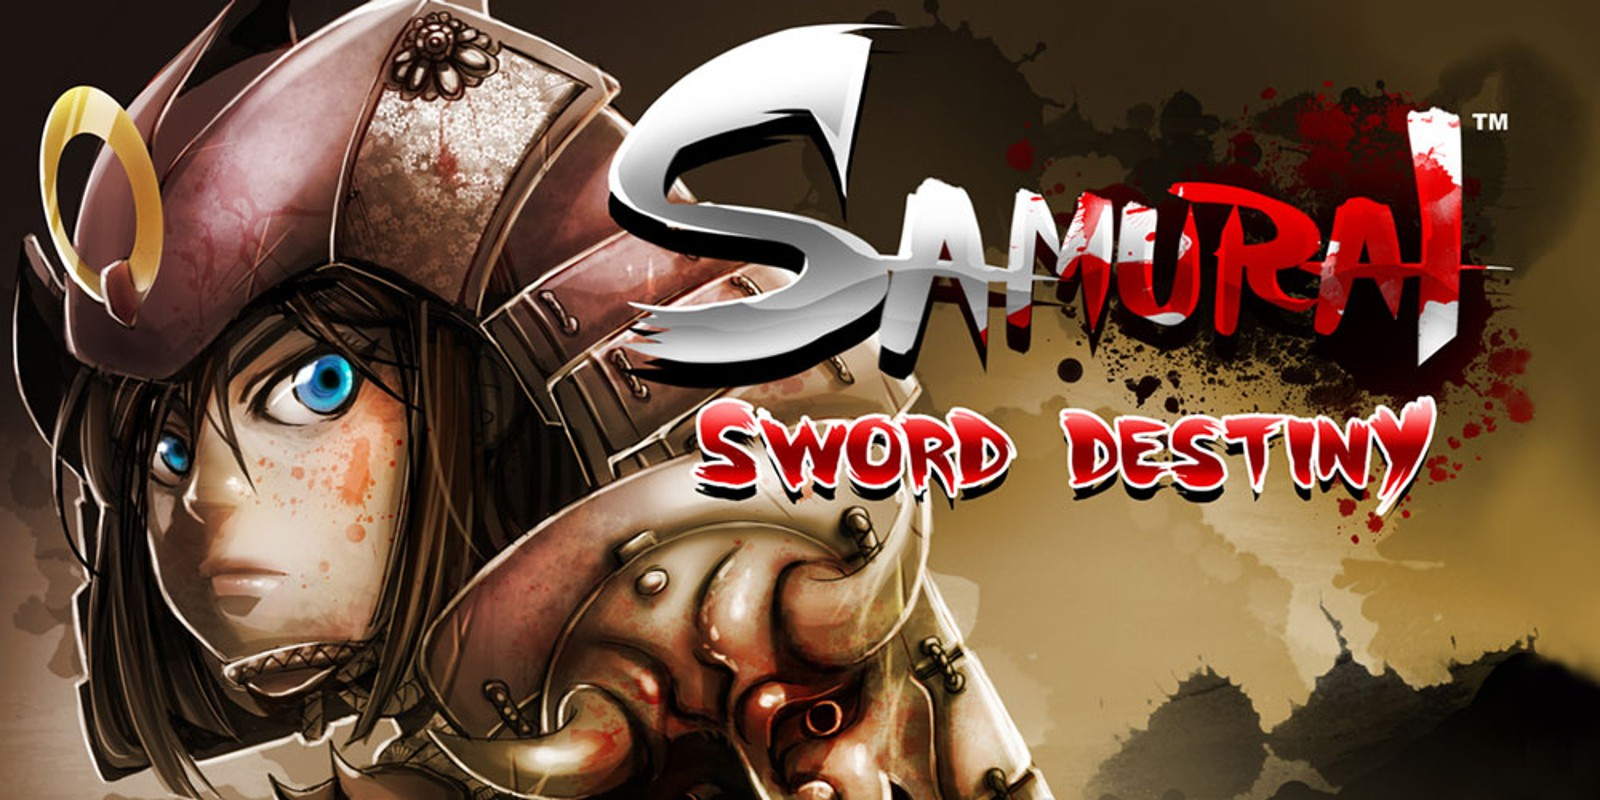 Samurai Sword Destiny™